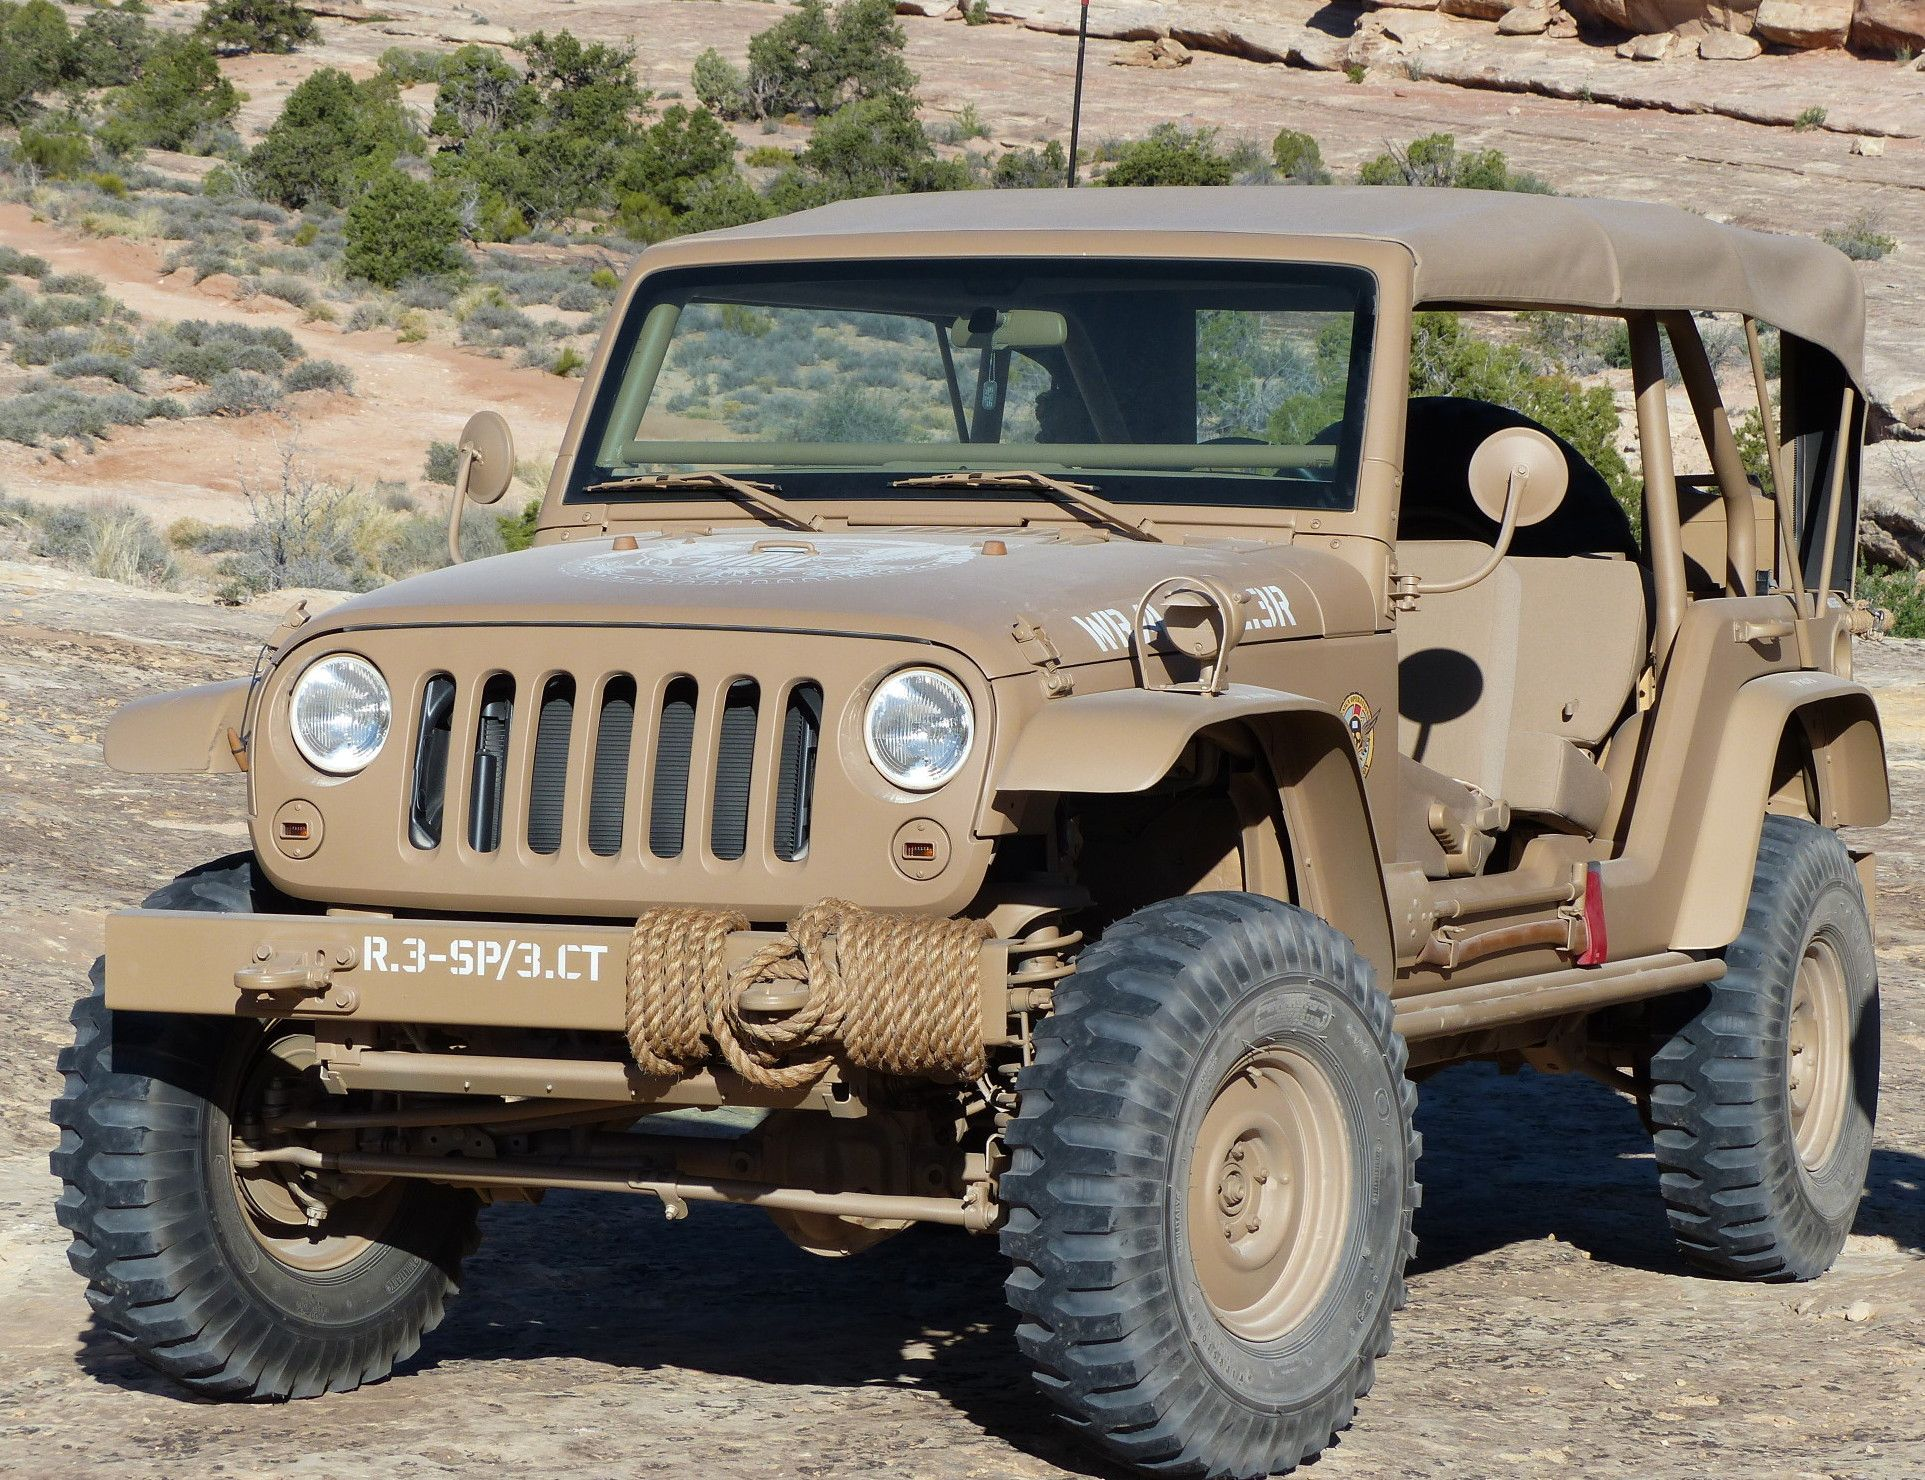 Jeep Wrangler Africa Concept The One We Really Want Them To Build